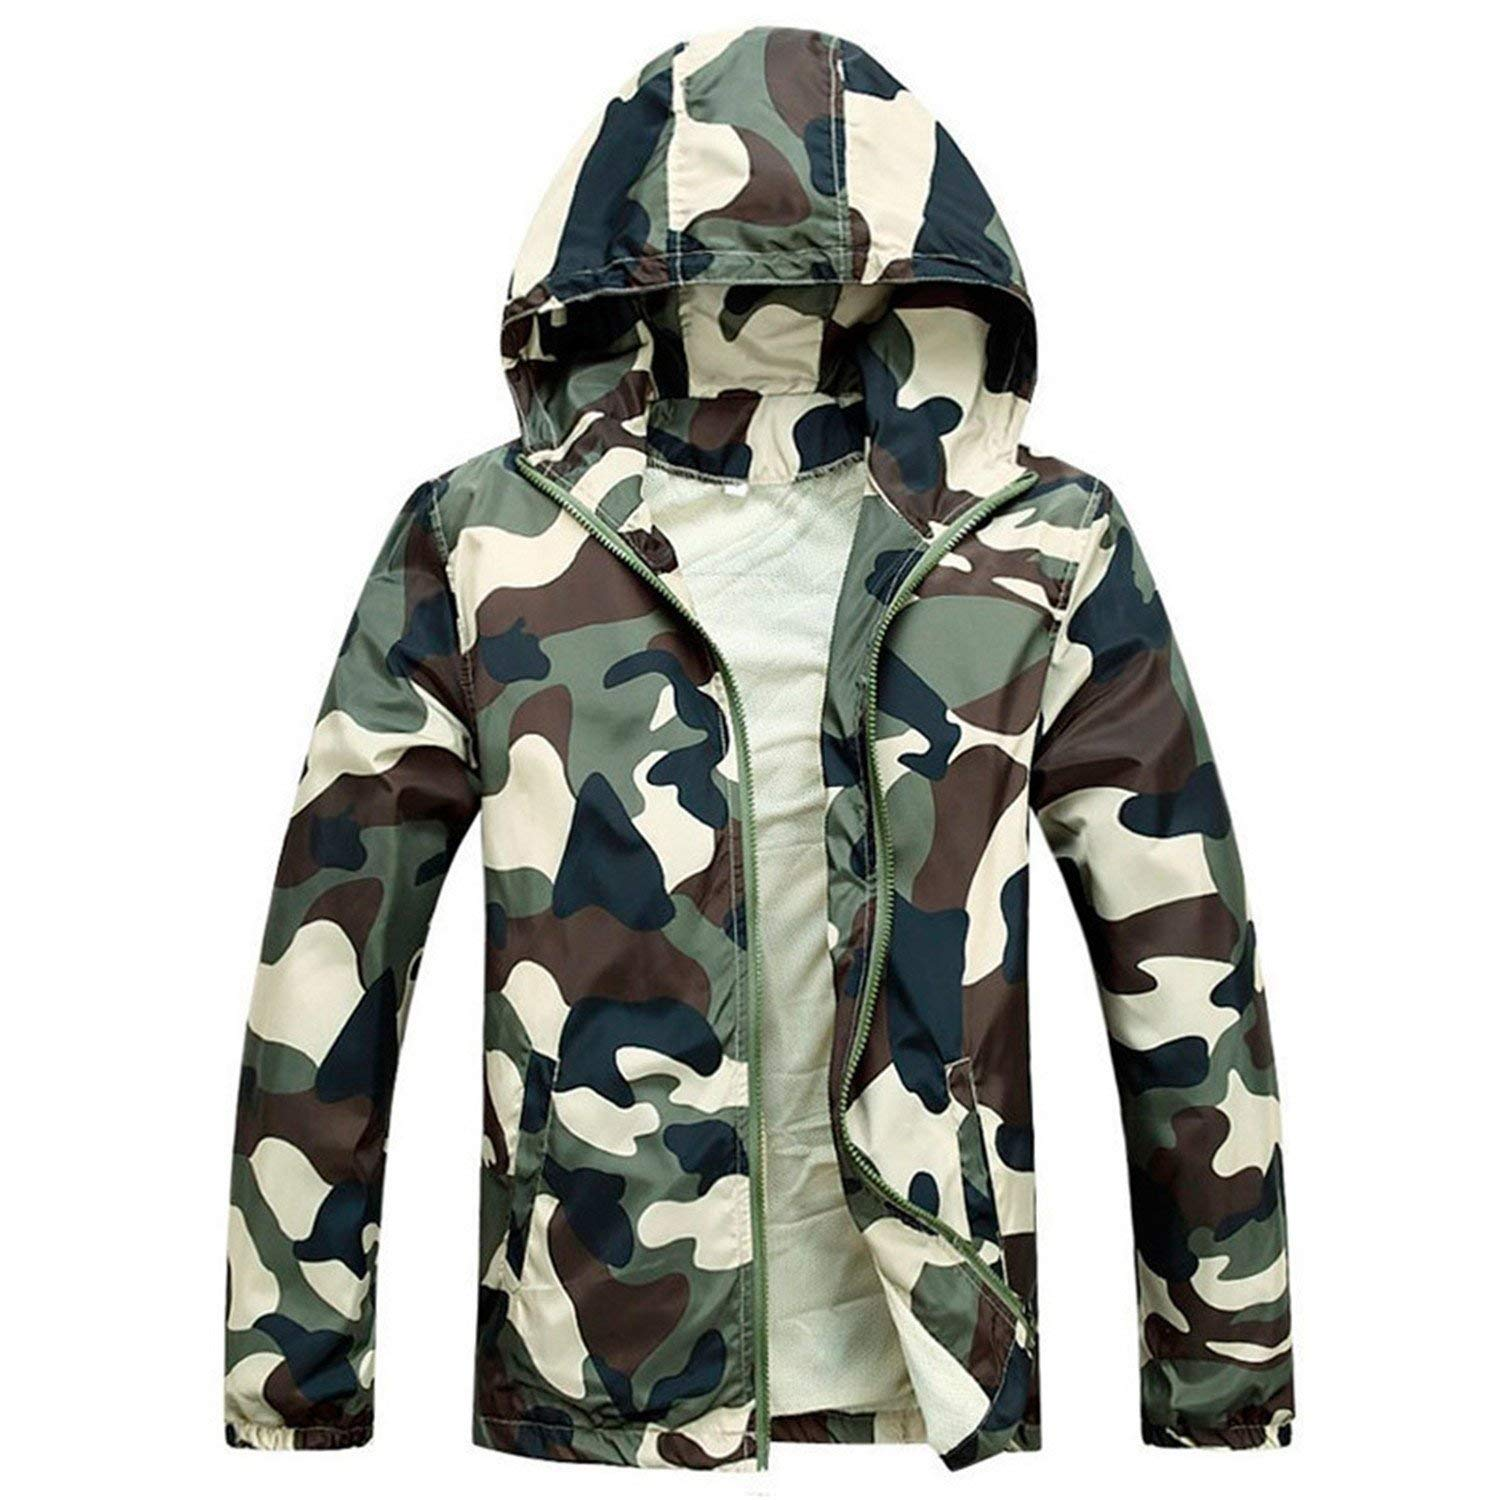 Roxacam Faomgo Hot Selling 2017 Camouflage Jacket Summer Tide Male Hooded Thin Sunscreen Coat Wholesale